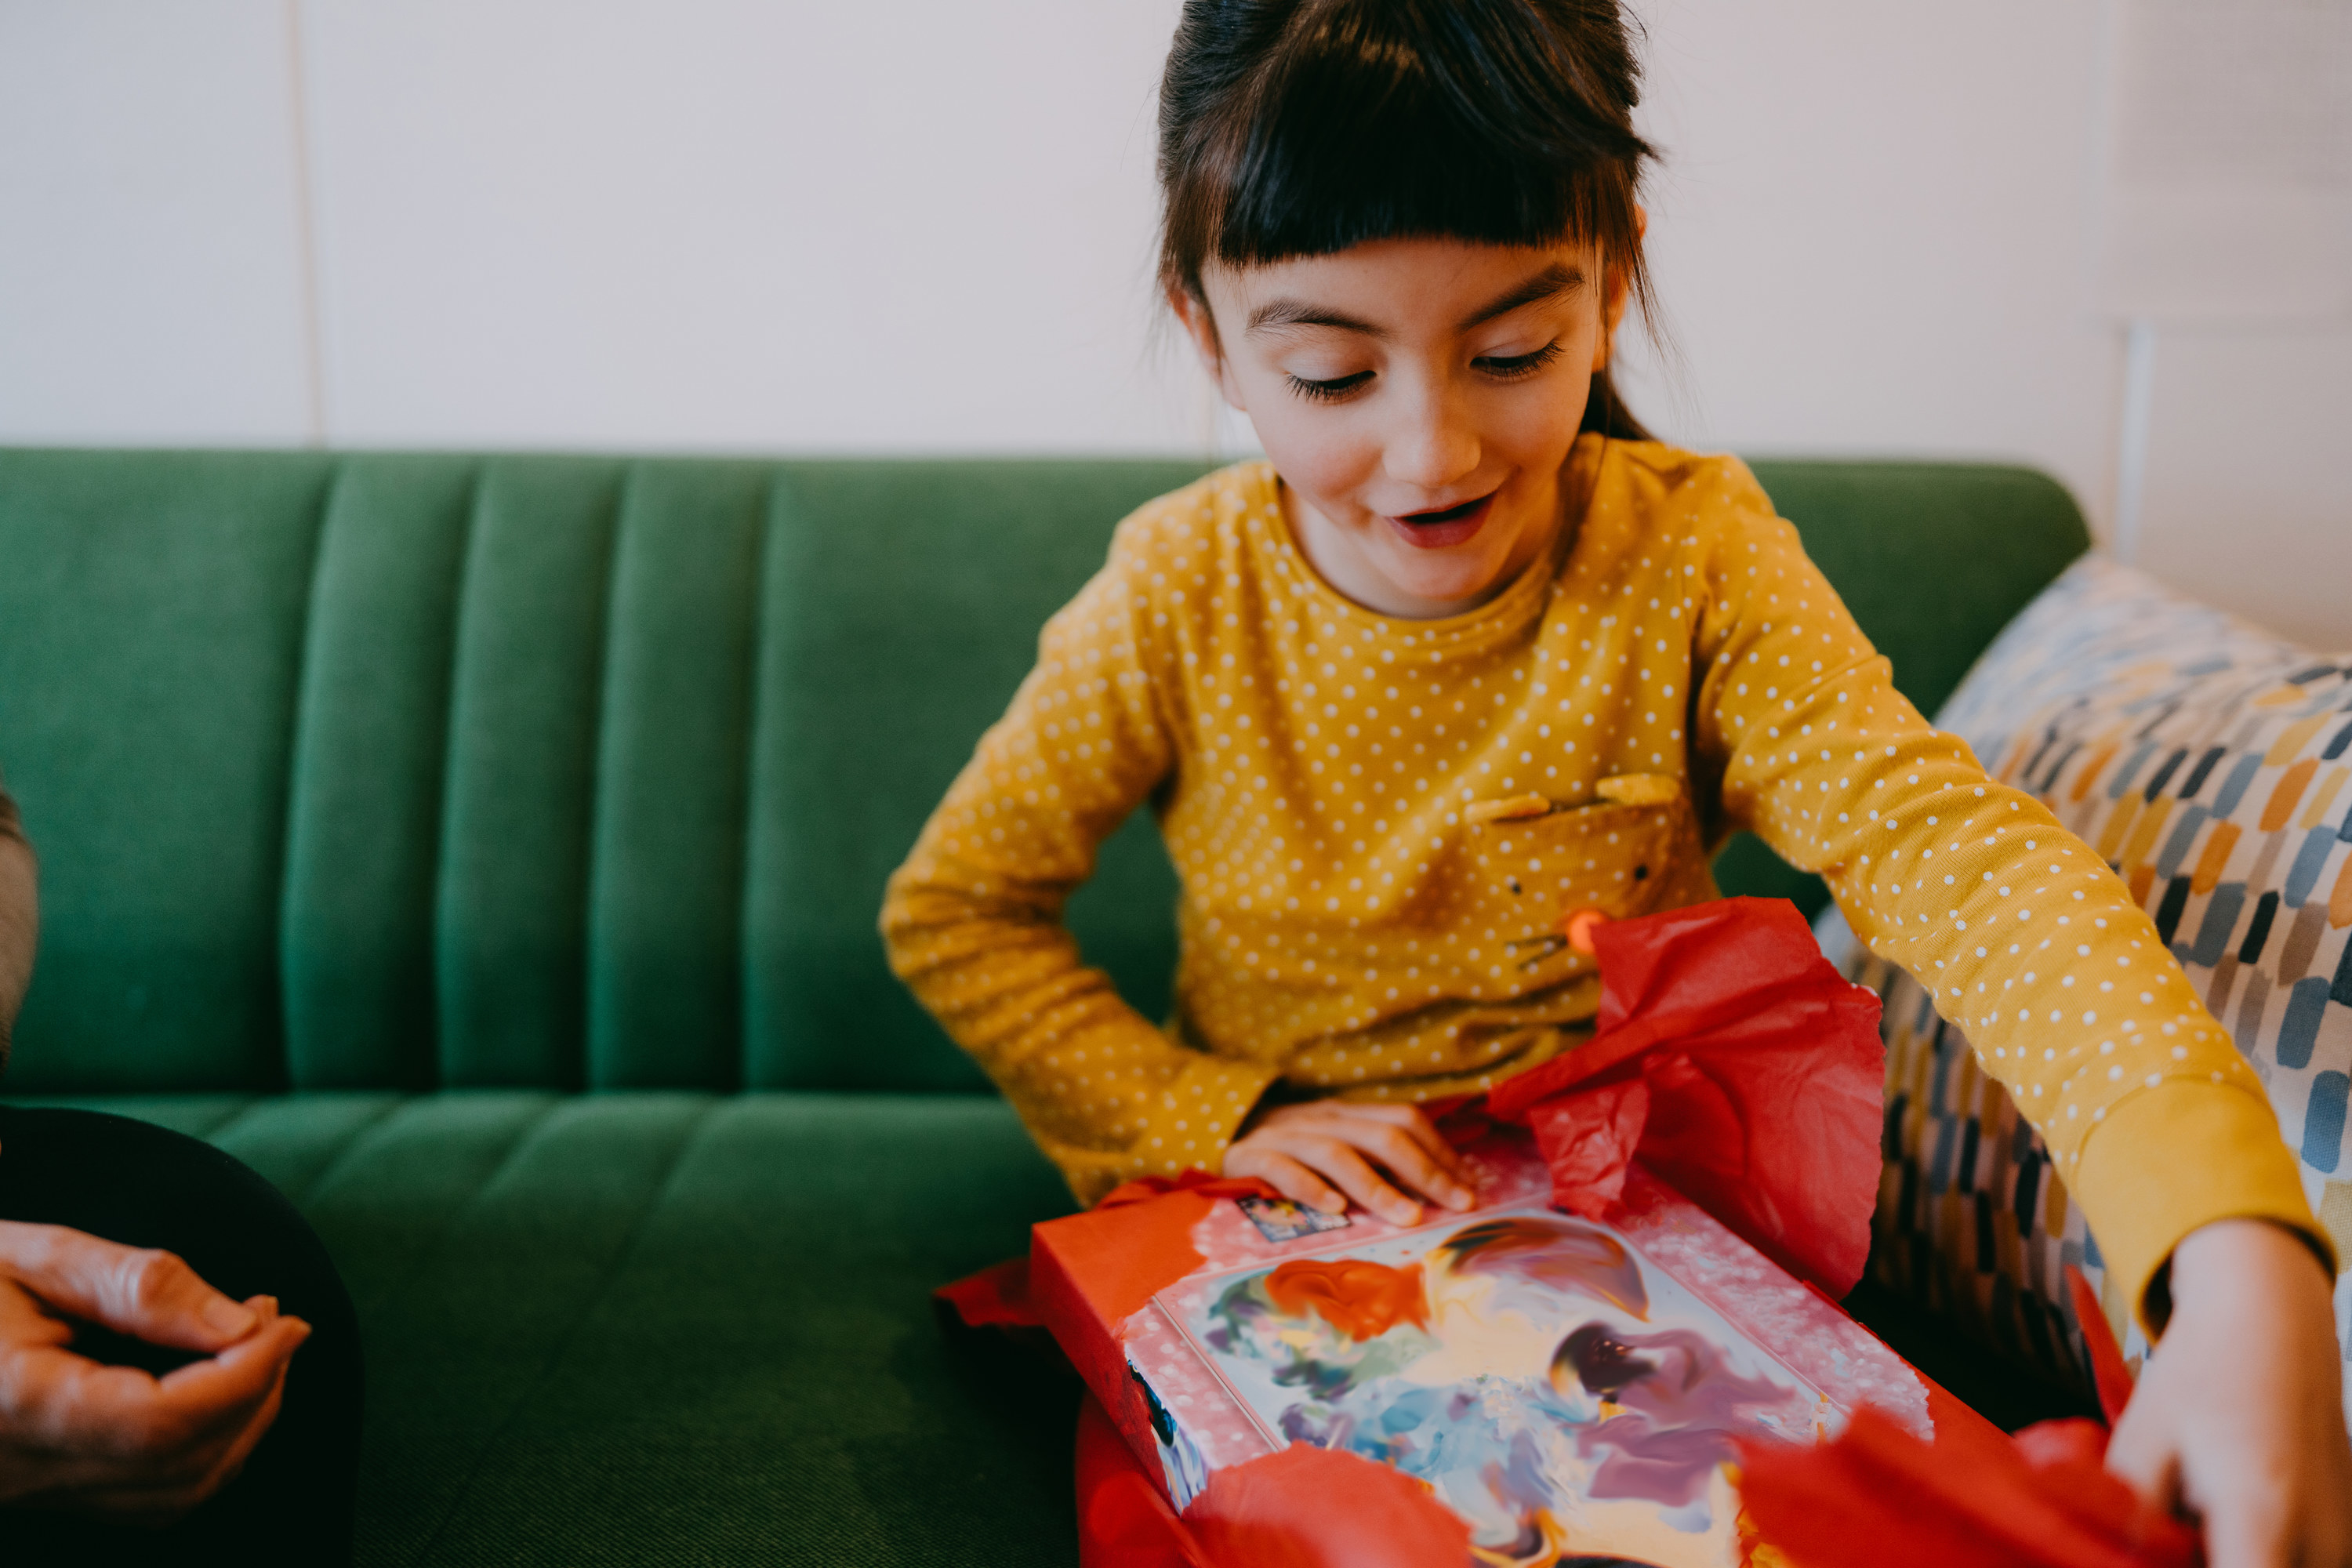 A girl excitedly unwraps a gift.